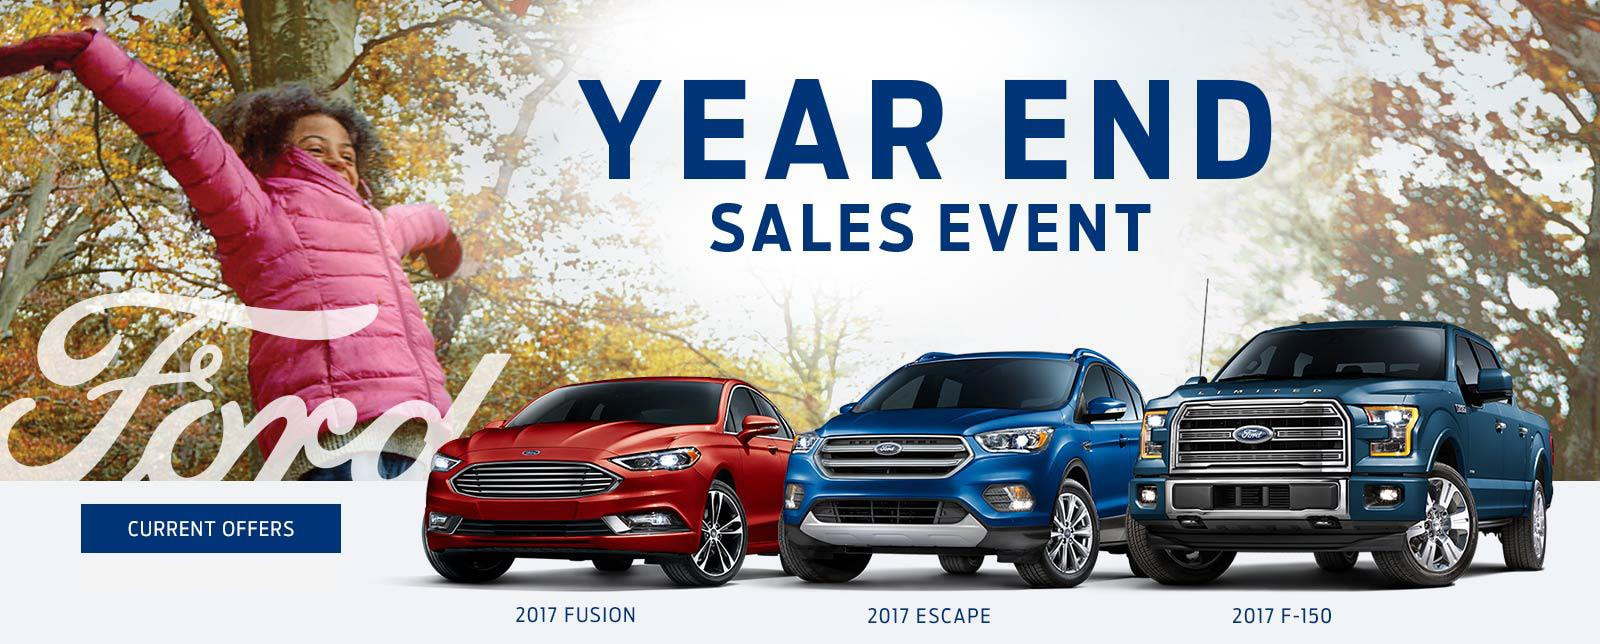 The holiday season has begun and at sheehy ford